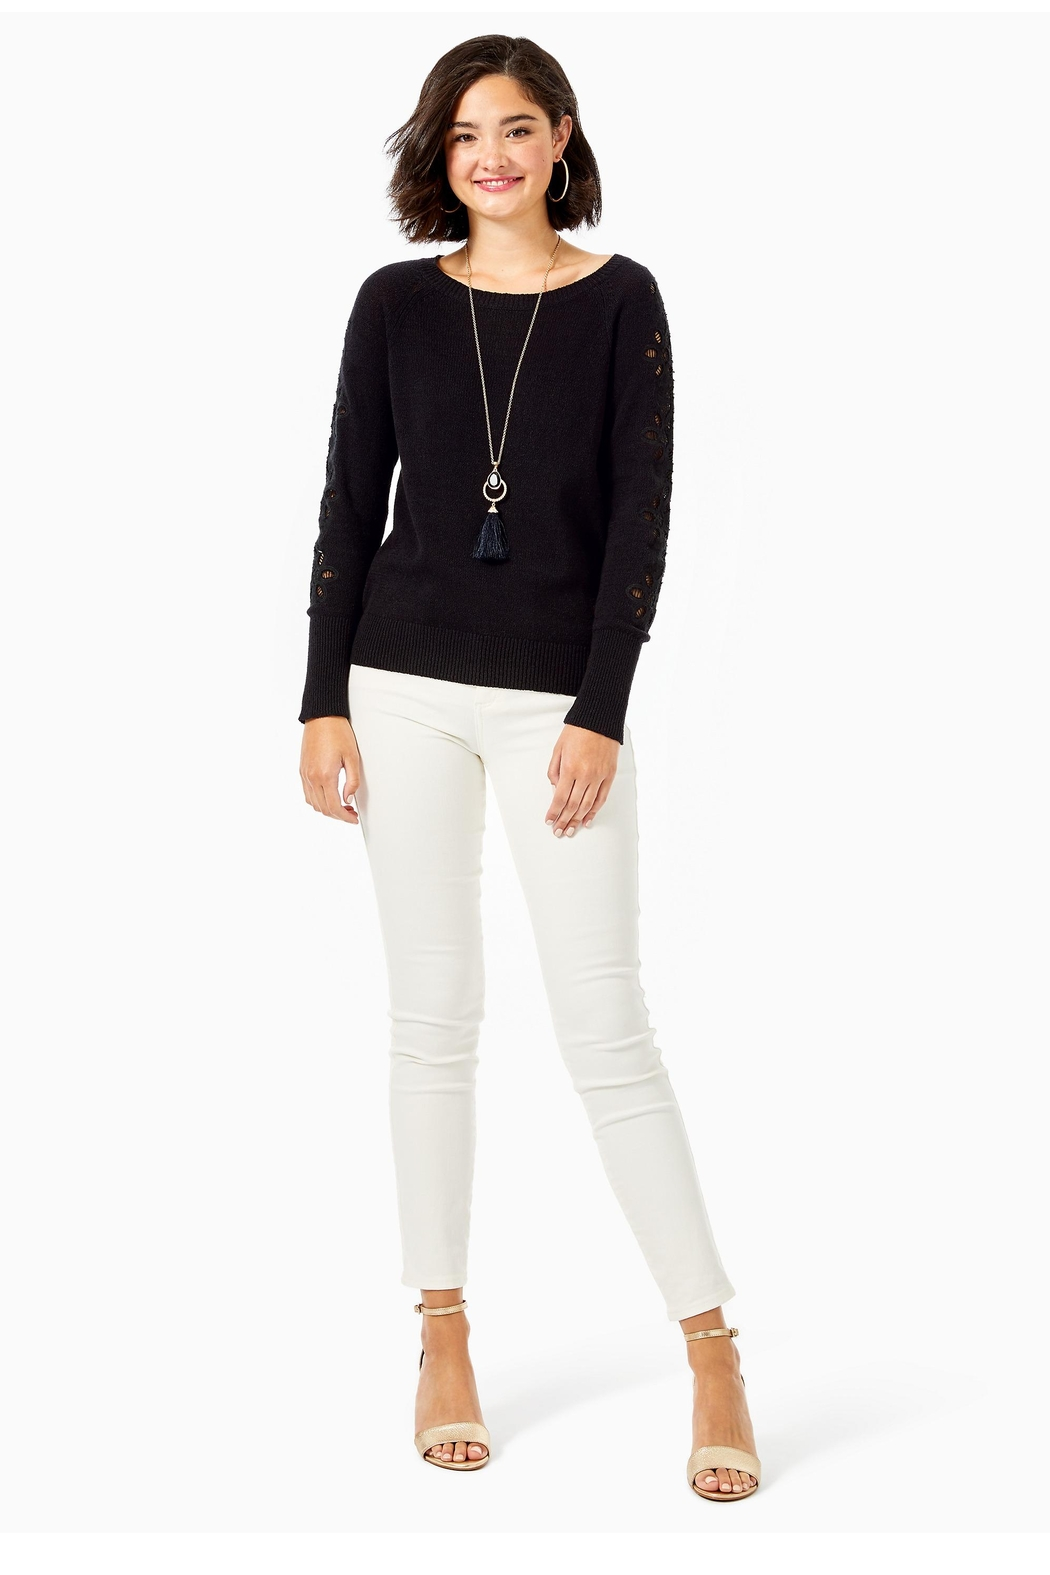 Lilly Pulitzer Cargile Sweater - Back Cropped Image